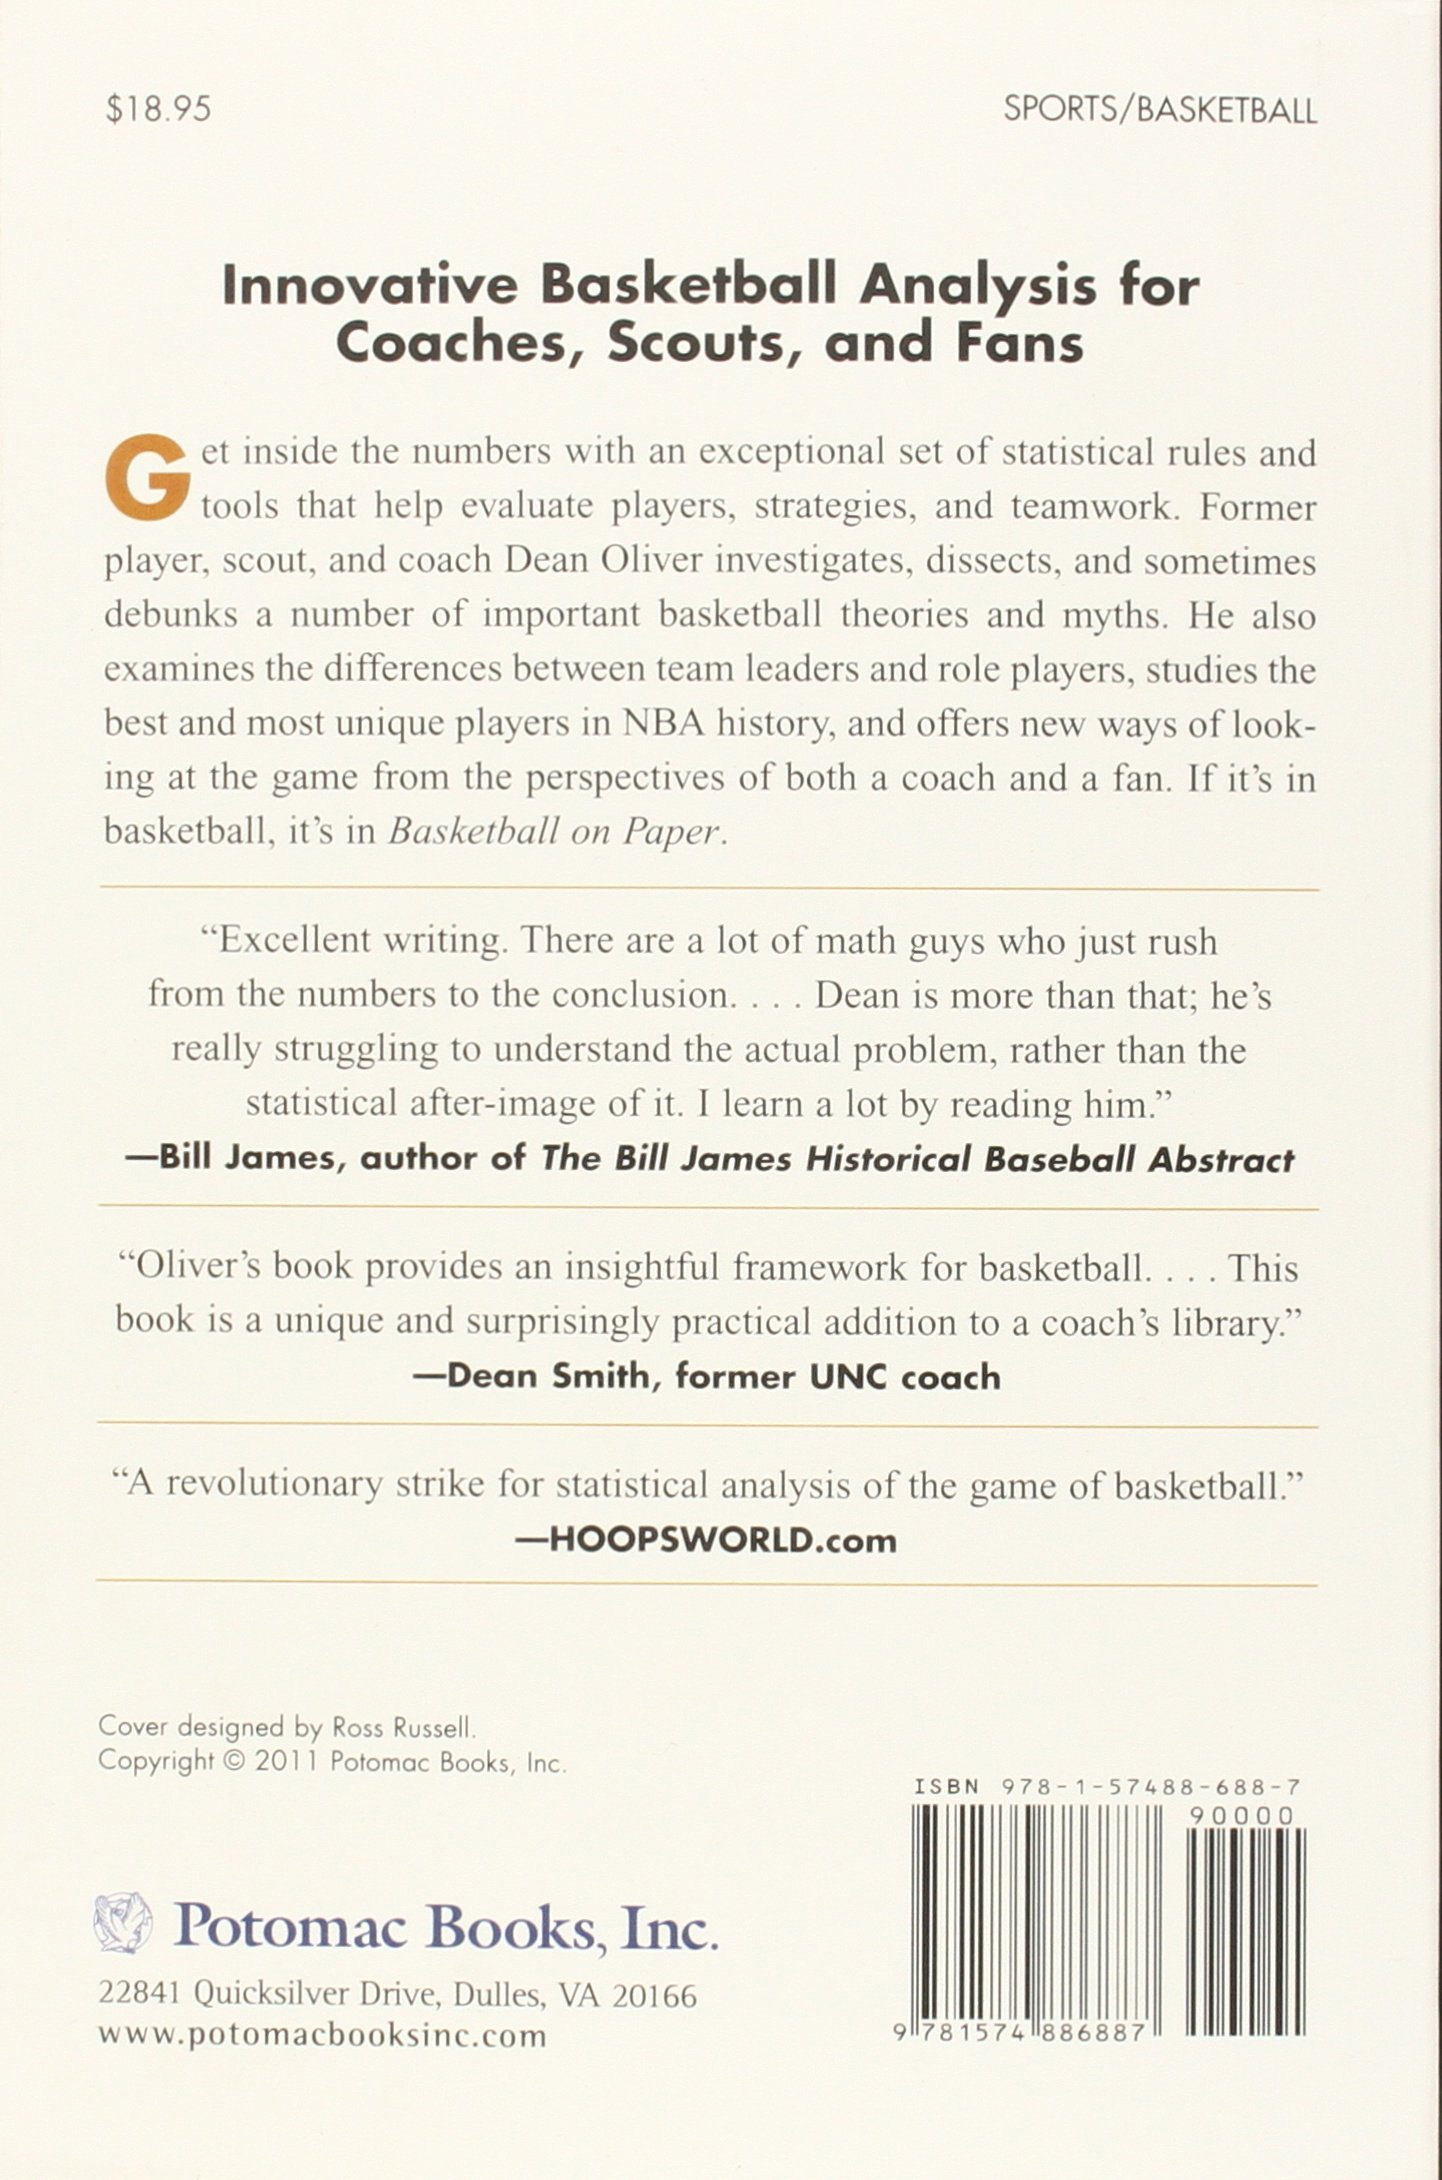 Basketball On Paper: Rules And Tools For Performance Analysis: Dean Oliver:  9781574886887: Amazon: Books